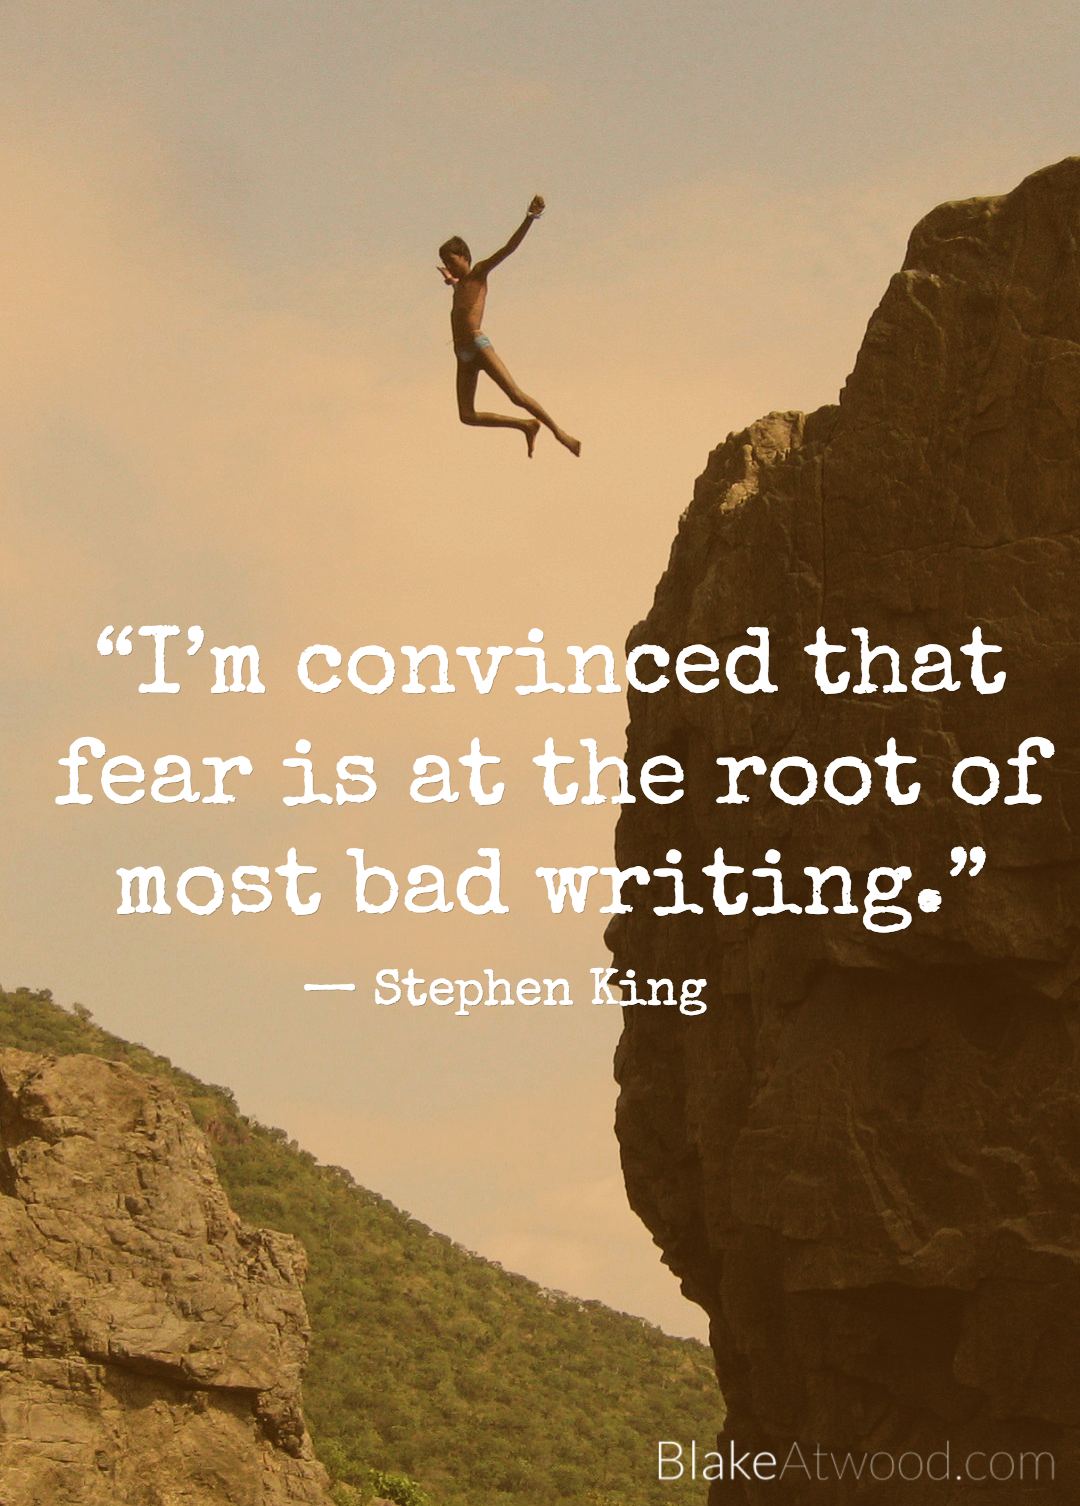 quotes about stephen king's writing (54 quotes)